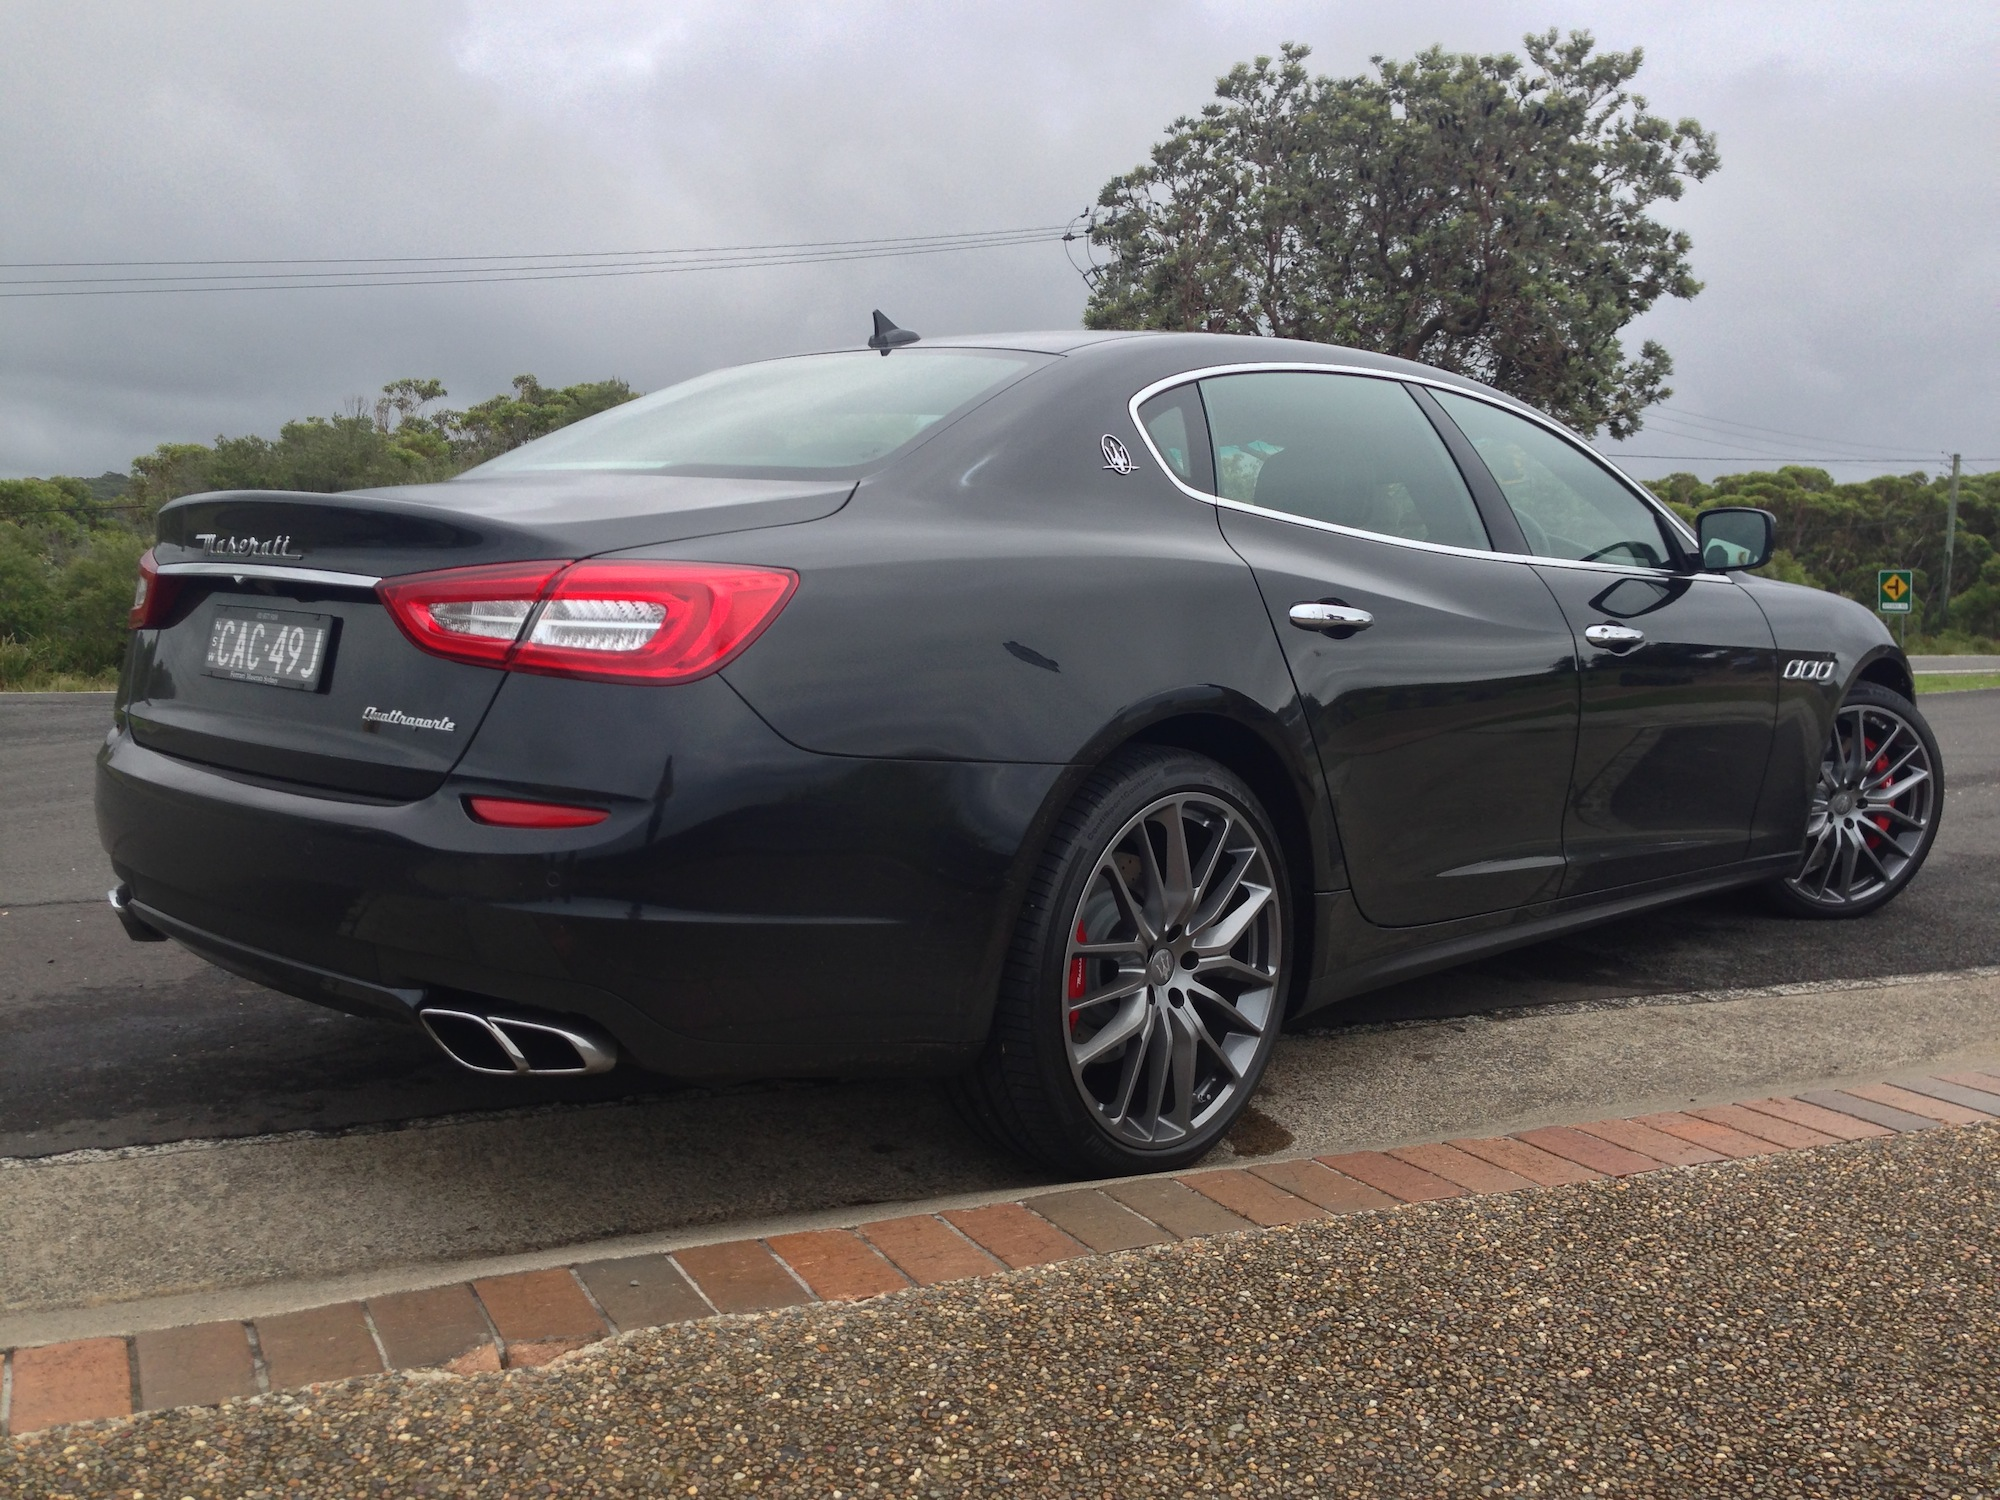 2014 Maserati Quattroporte Review - photos | CarAdvice